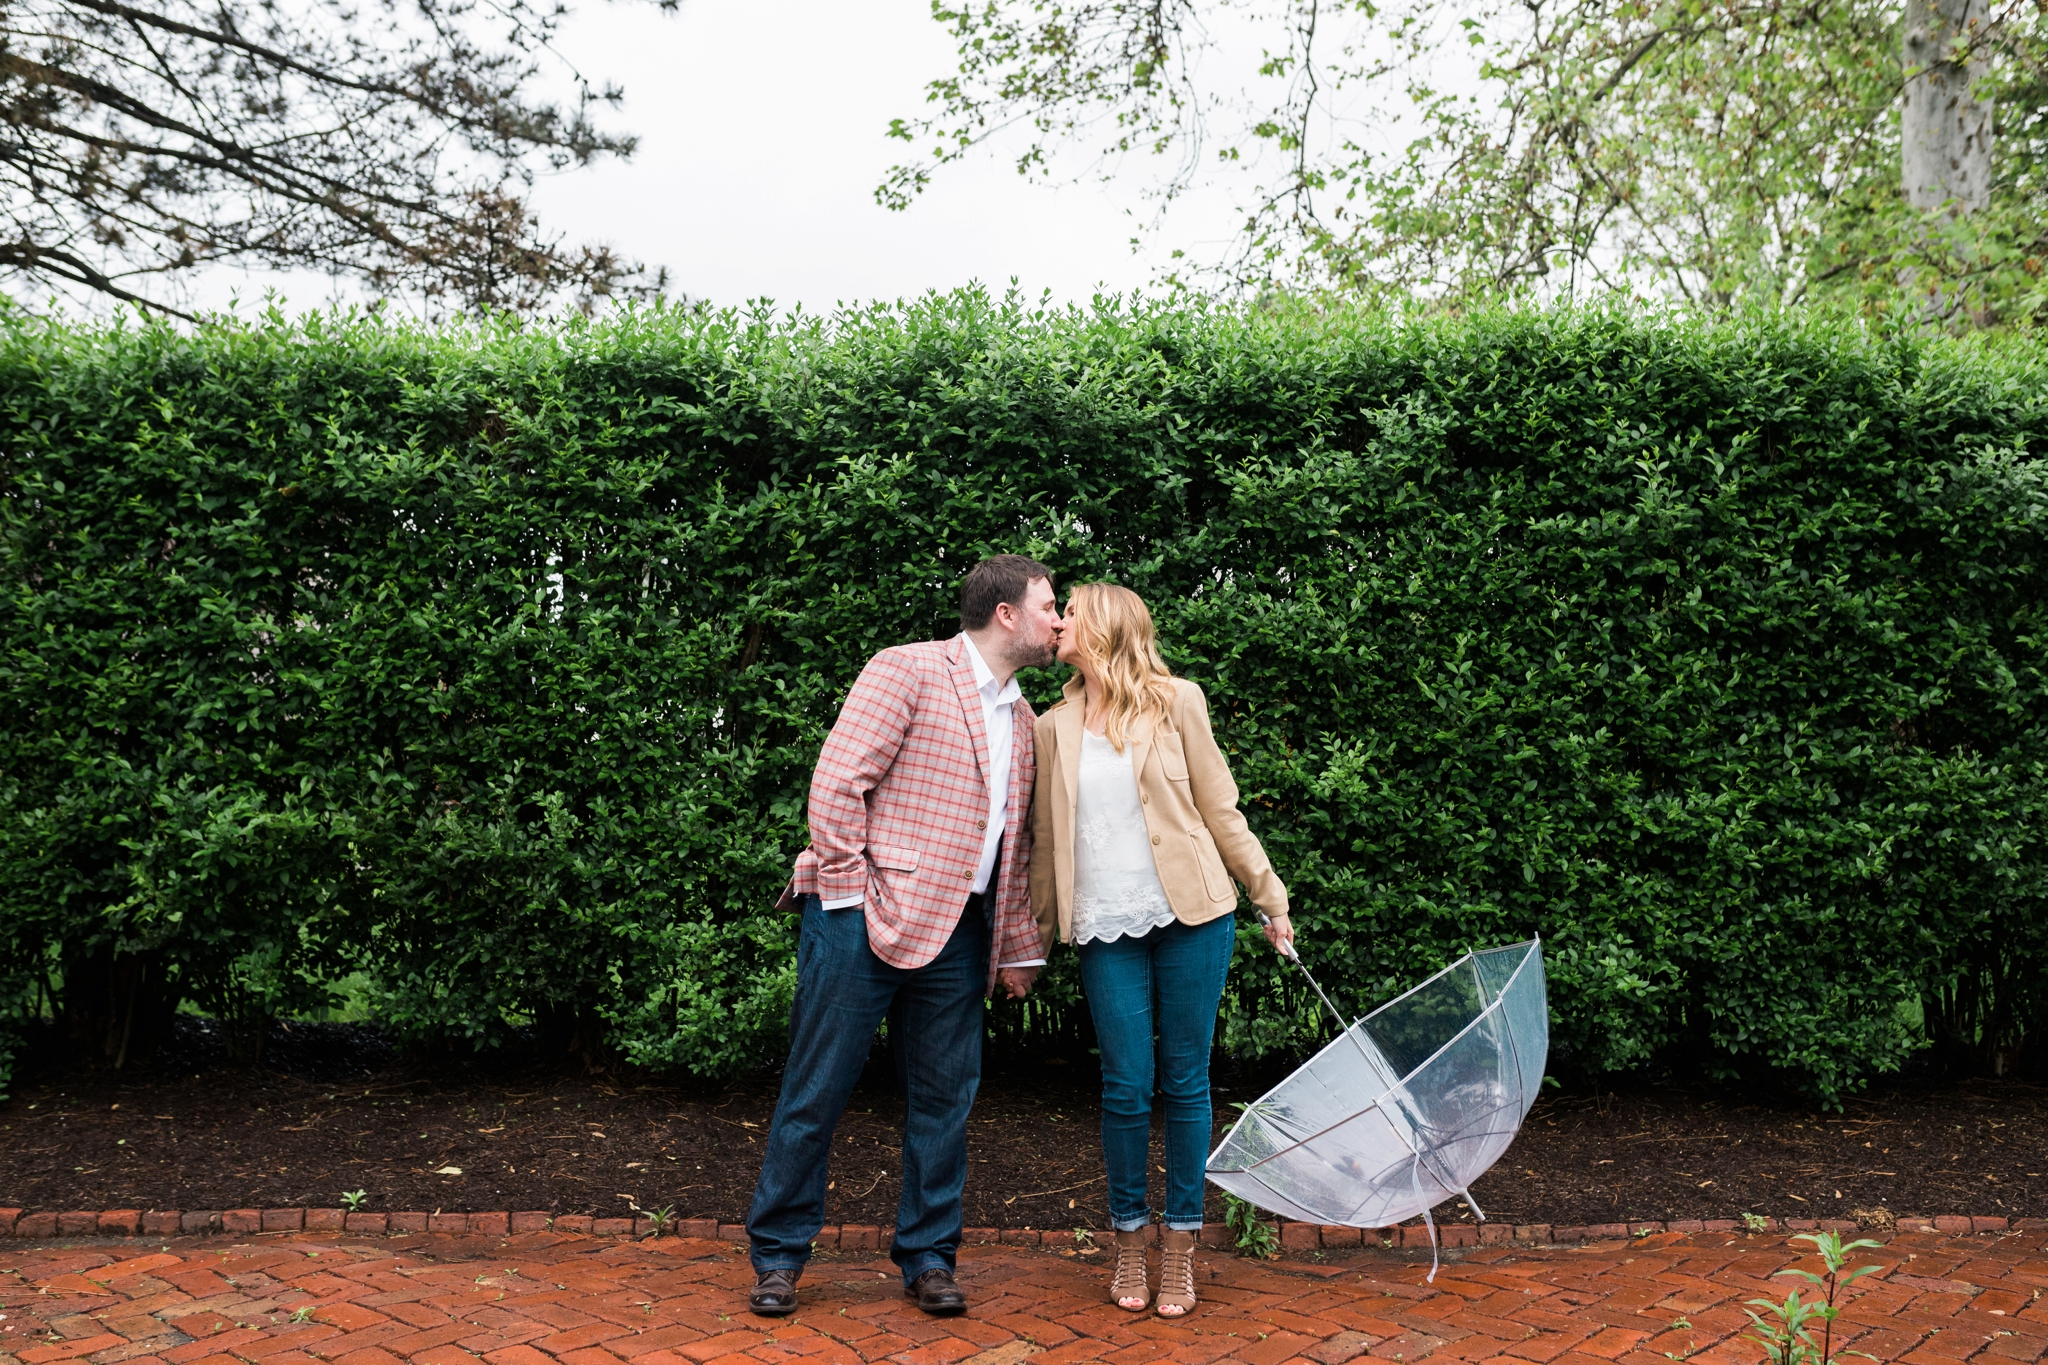 Emily Grace Photography, Lancaster PA Wedding Photograper for Non-Traditional Couples, Marietta PA Engagement Session, Rainy Day Engagement Photos